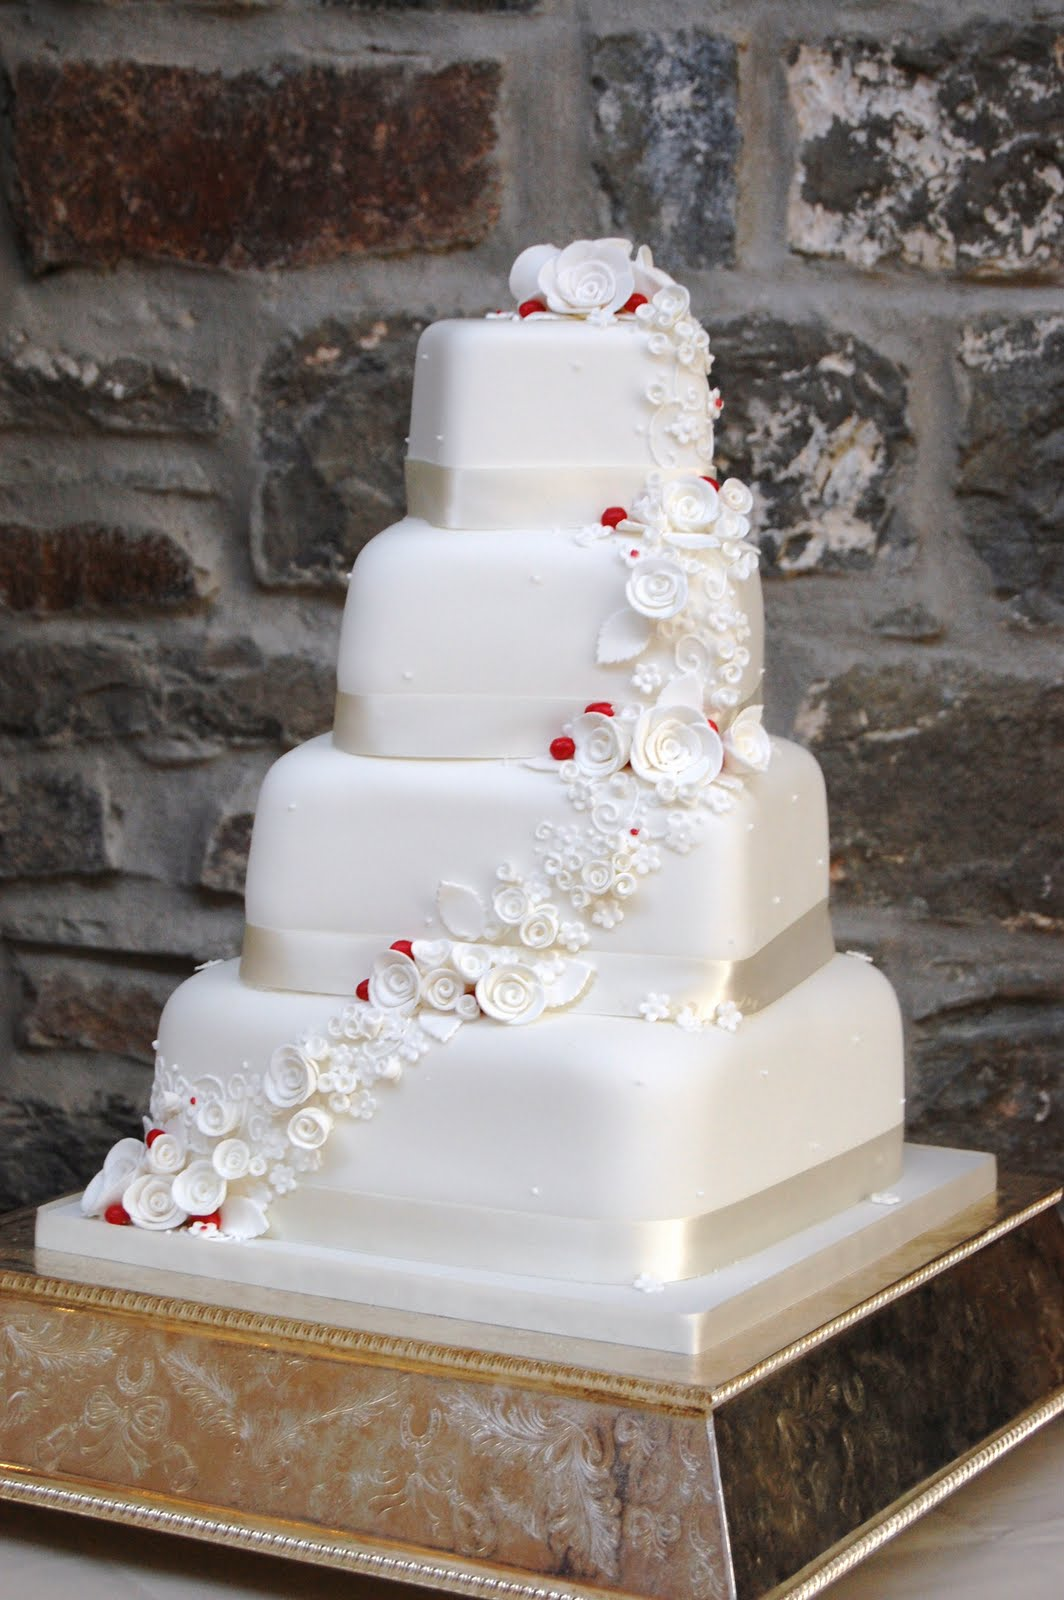 Awesome Wedding Cake Designs with Roses Decoration